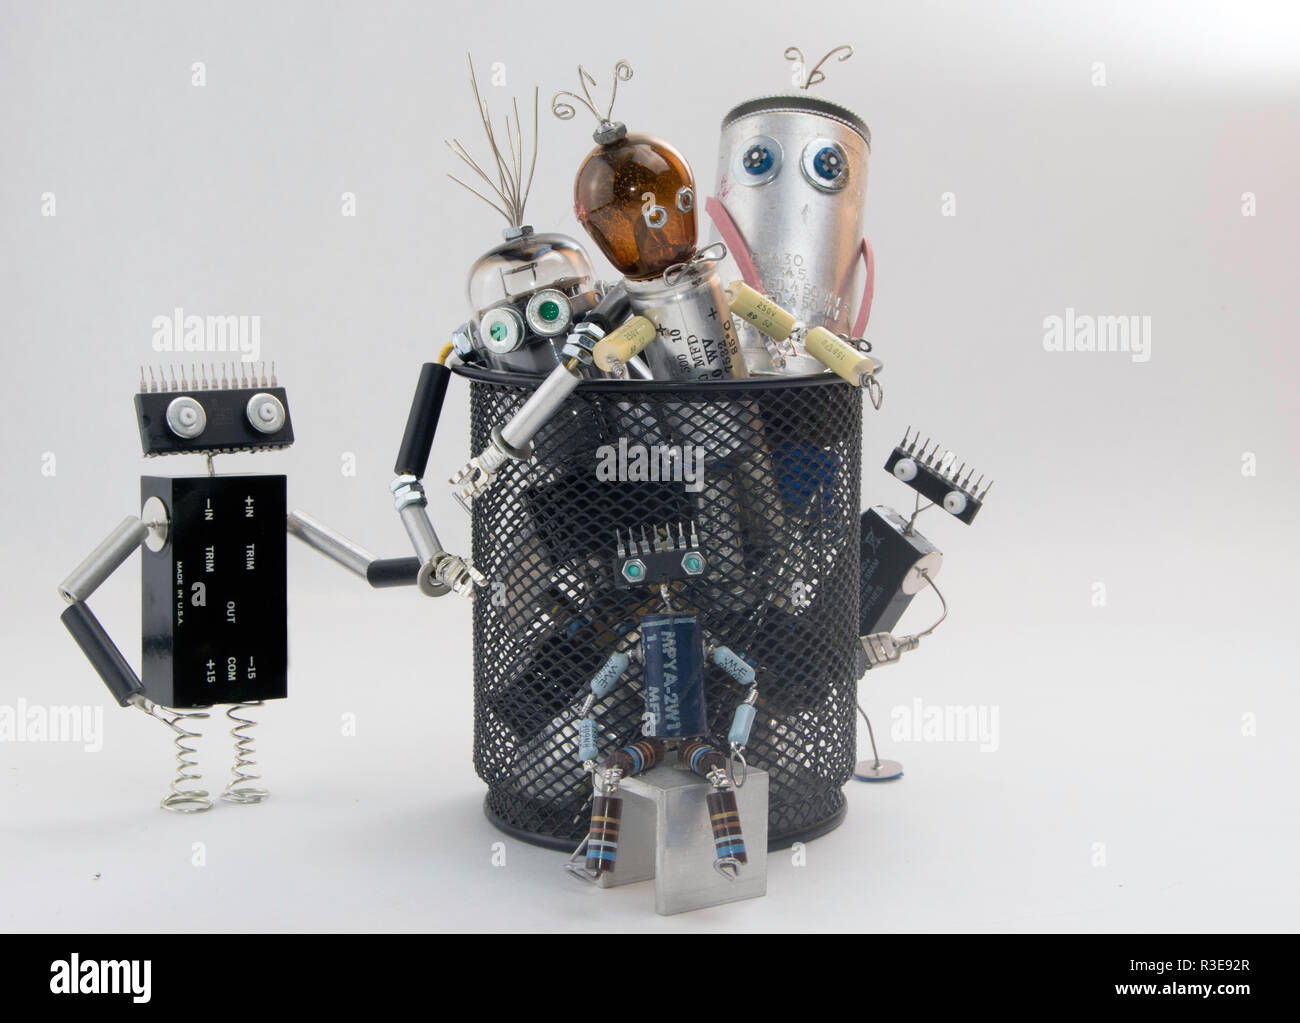 electronic waste robot characters in trash can - Stock Image